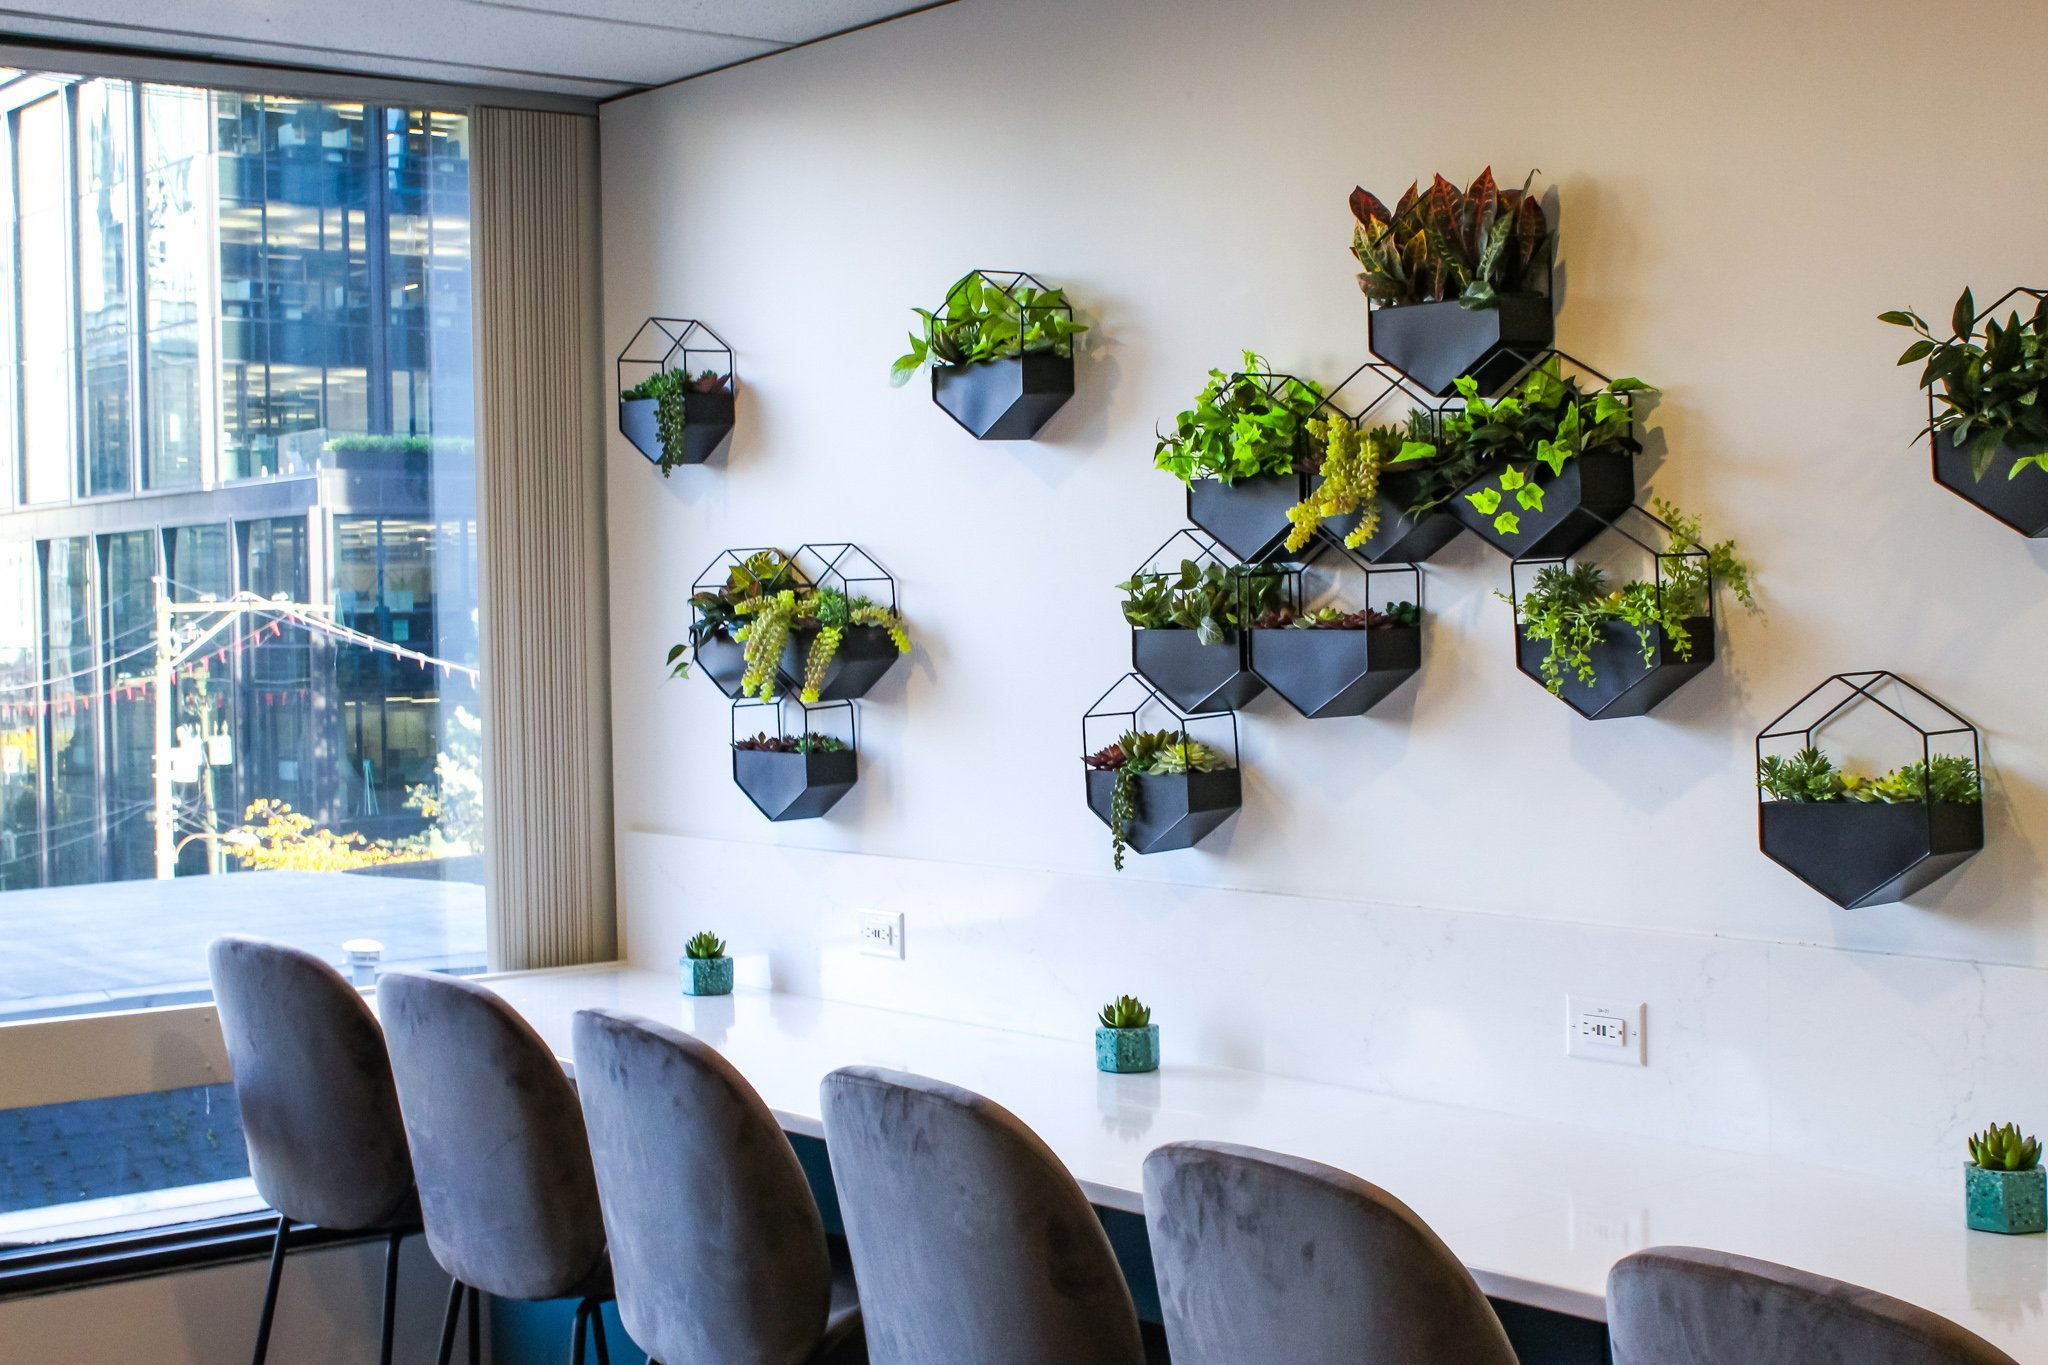 Black hexagon wall planters filled with various artificial greenery for office building kitchen wall decor